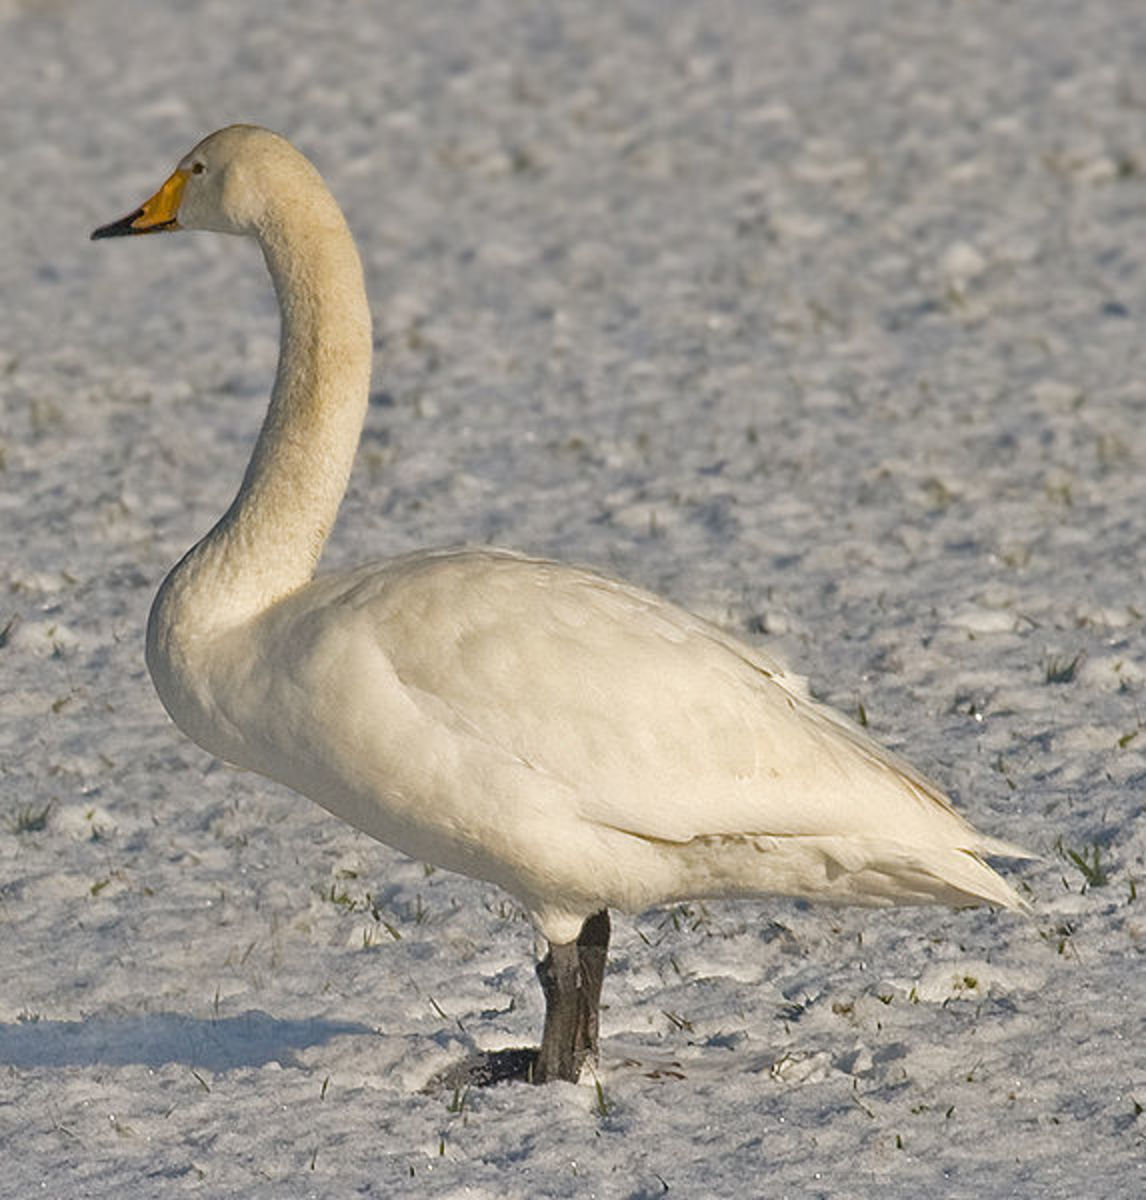 The adult whooper swan has a triangular head and carries its neck straight. The yellow patch on the bill is more angular than that on the Bewick's swan.